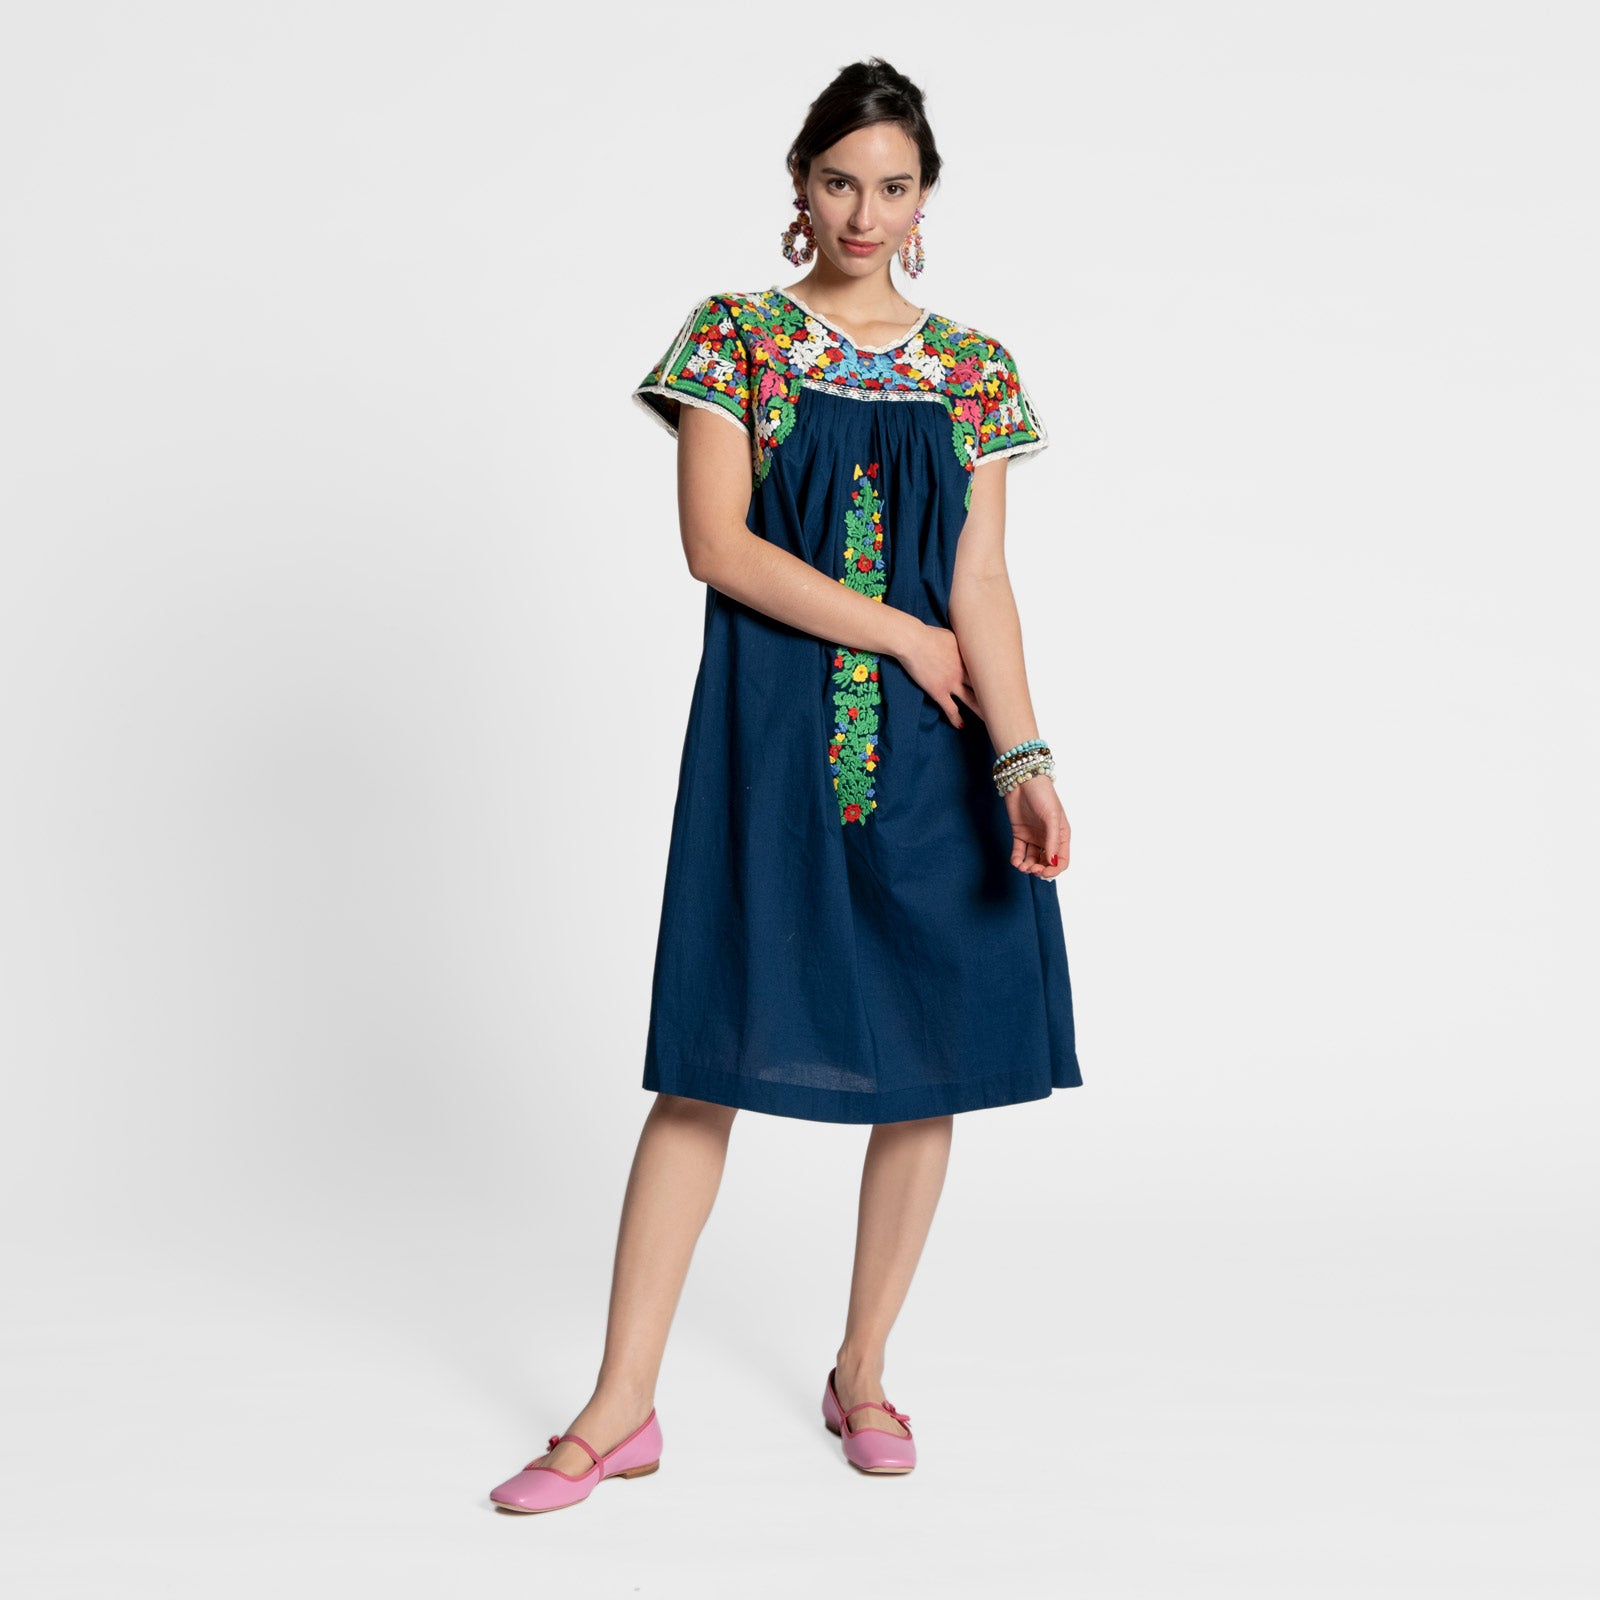 Embroidered Flower Midi Dress Navy - Frances Valentine